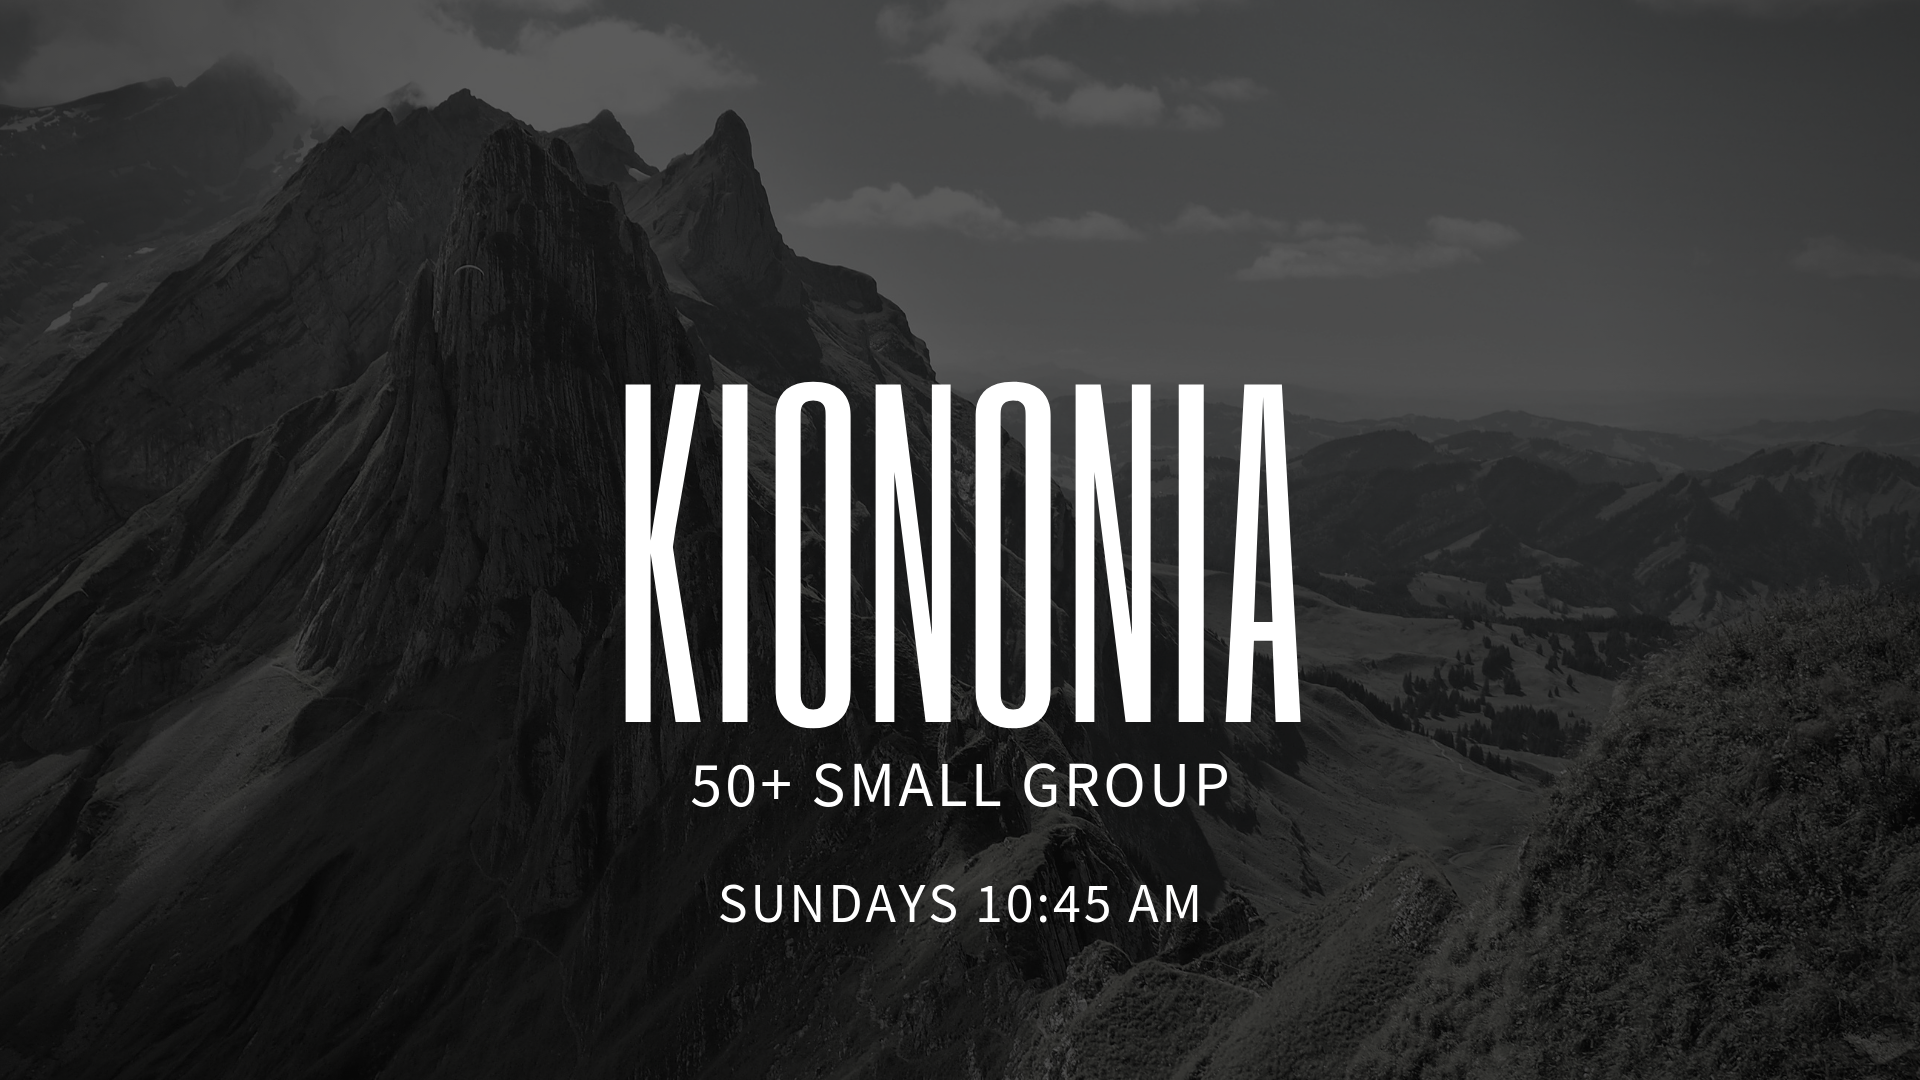 Led by Tom Saterfiel, this is a LifeGroup mainly for senior adults. They are community of likeminded and similarly aged adults striving towards Christlikeness. They meet from 10:45am - 12:00pm every Sunday morning in our Adult Bible Study hallway.